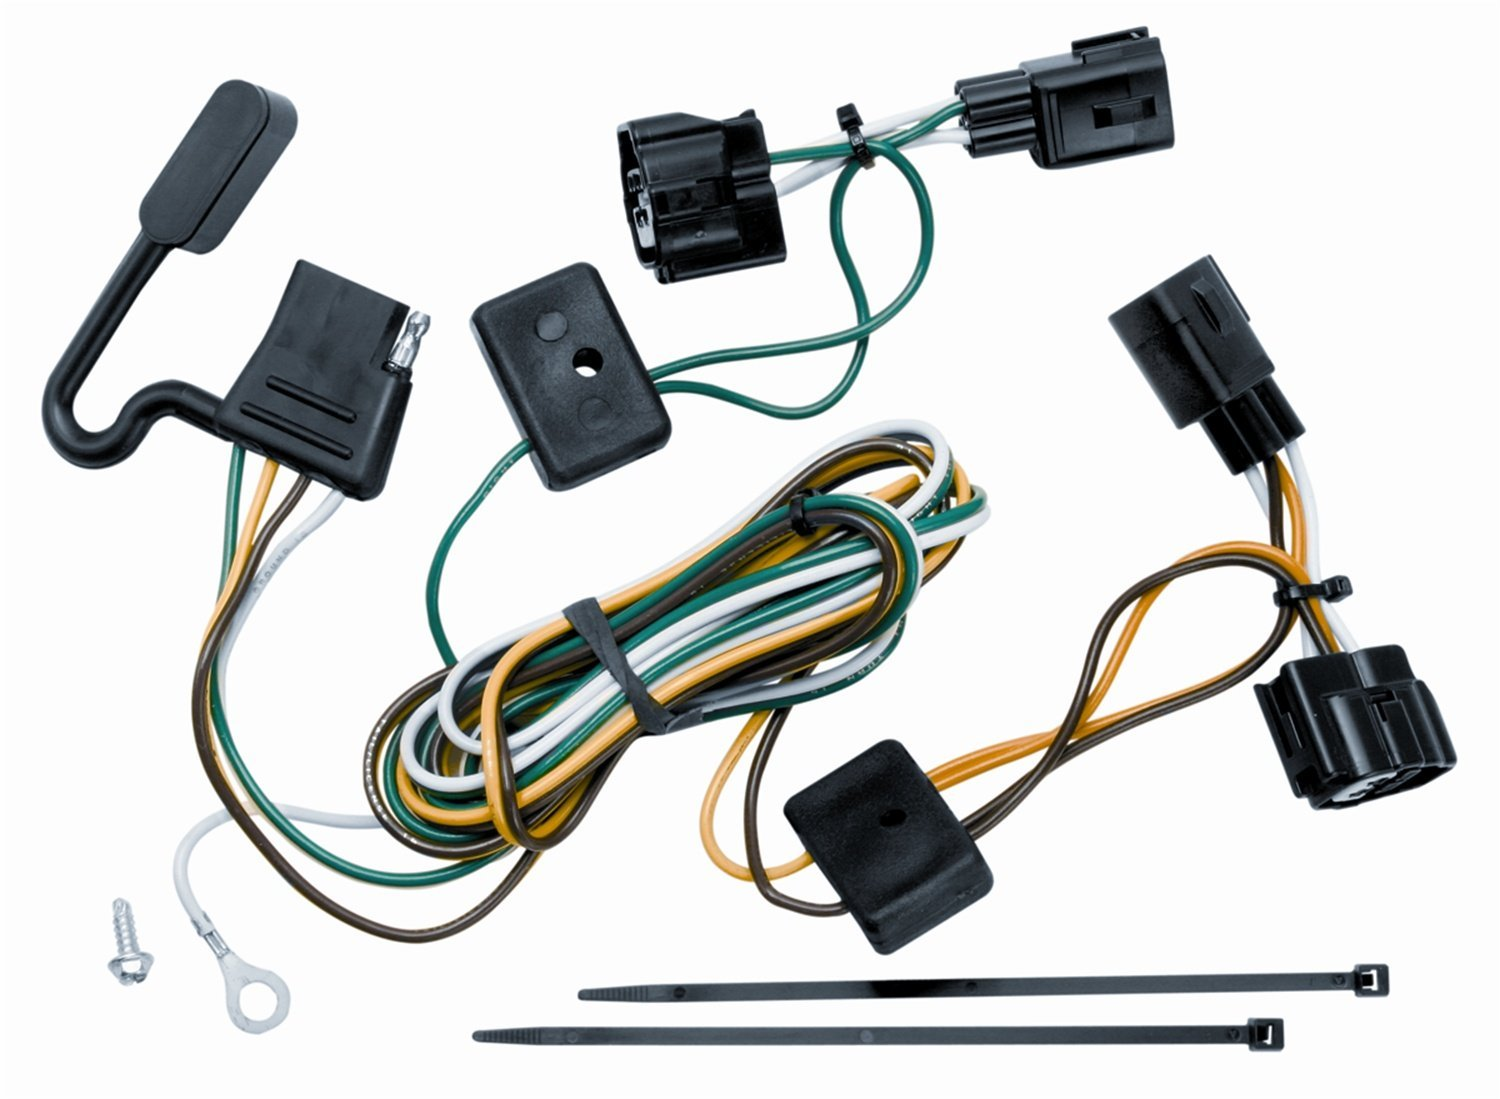 Jeep Yj Trailer Wiring Harness Library 1998 Gmc Get Quotations Vehicle To Connector 98 06 Wrangler Unlimited